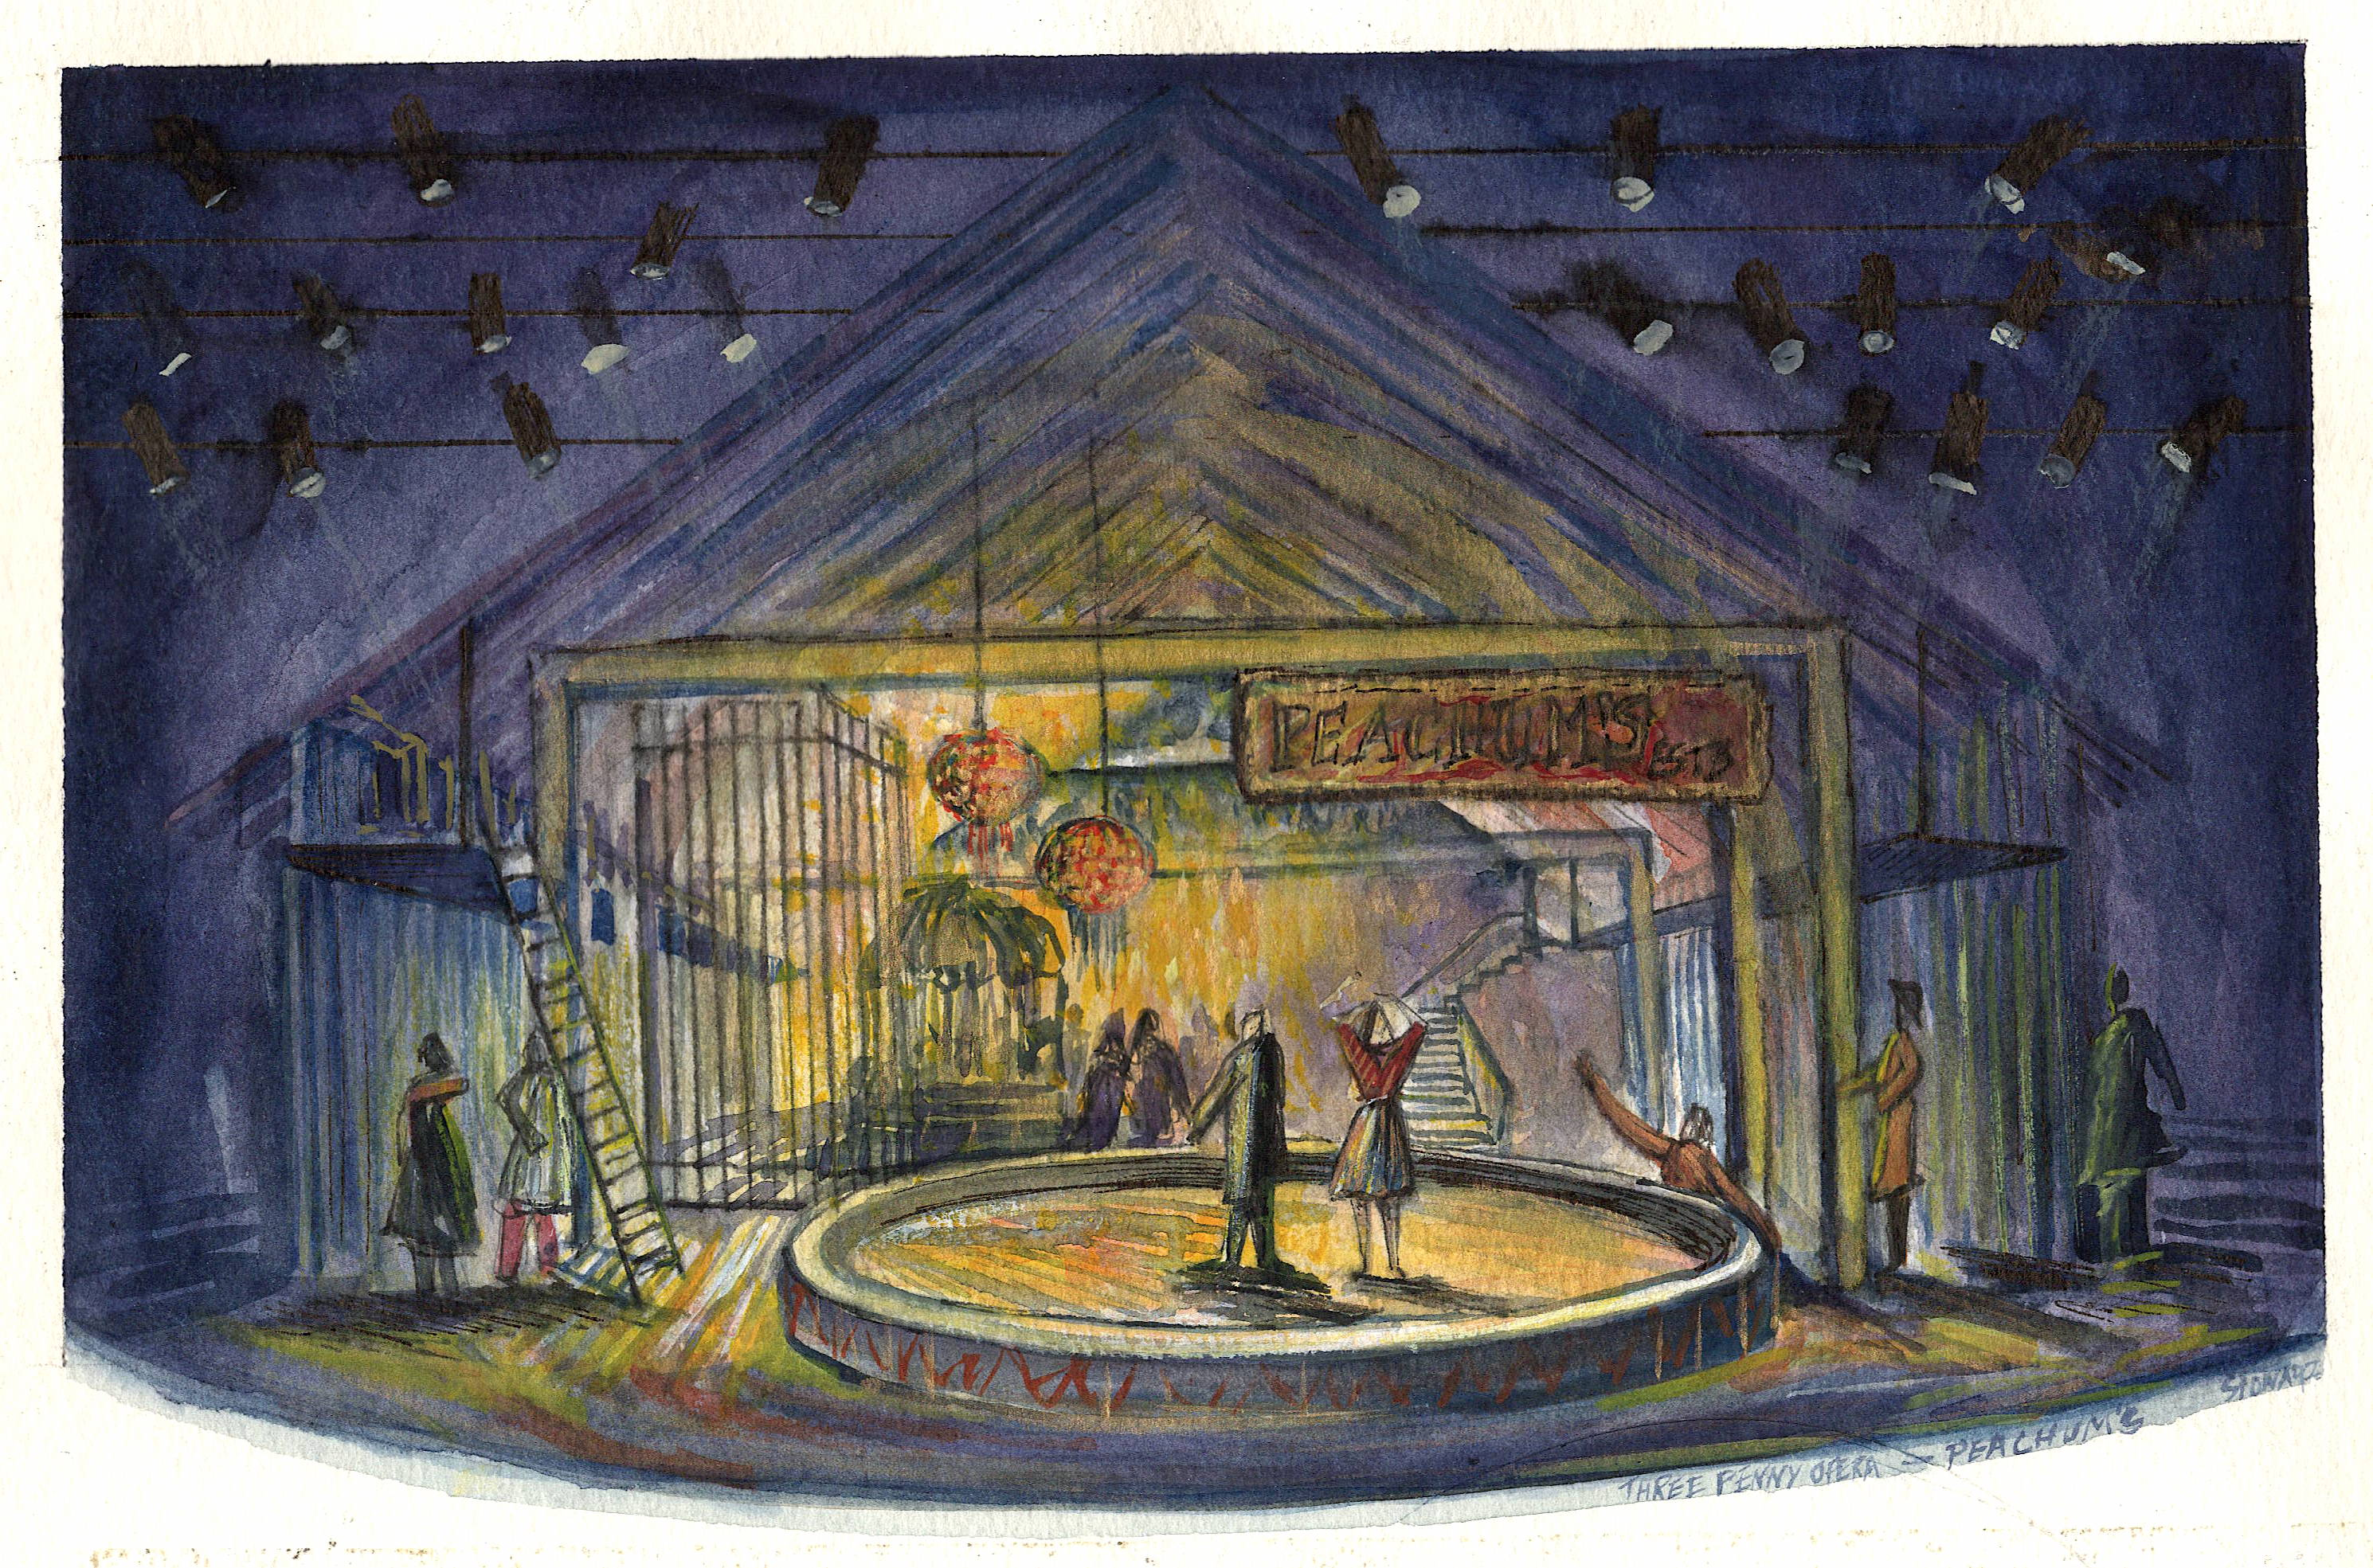 The Three Penny Opera by BertoltBrecht - Model and Set design renderings - 2